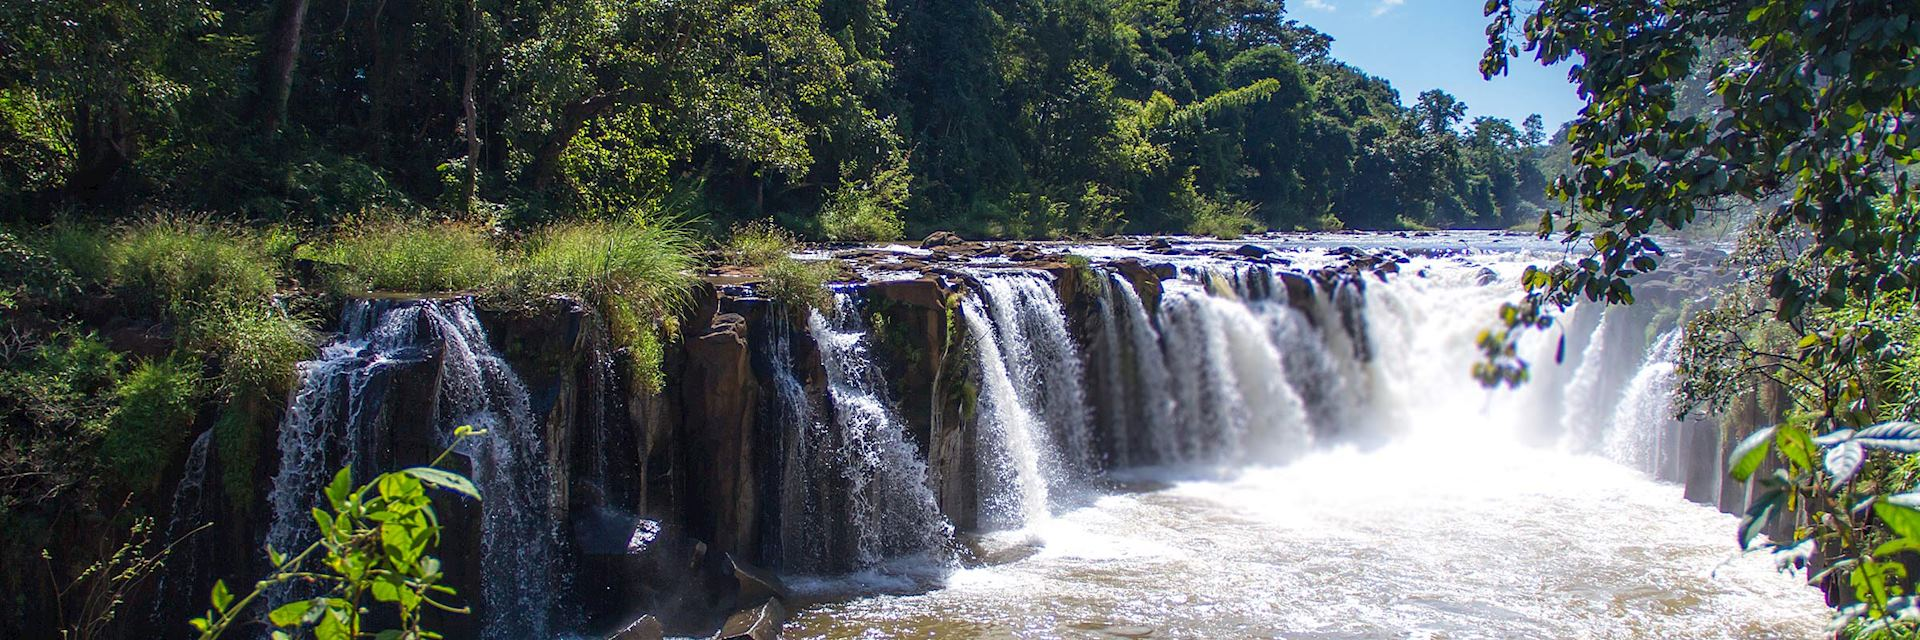 Tad Pha Souam Waterfall, Pakse